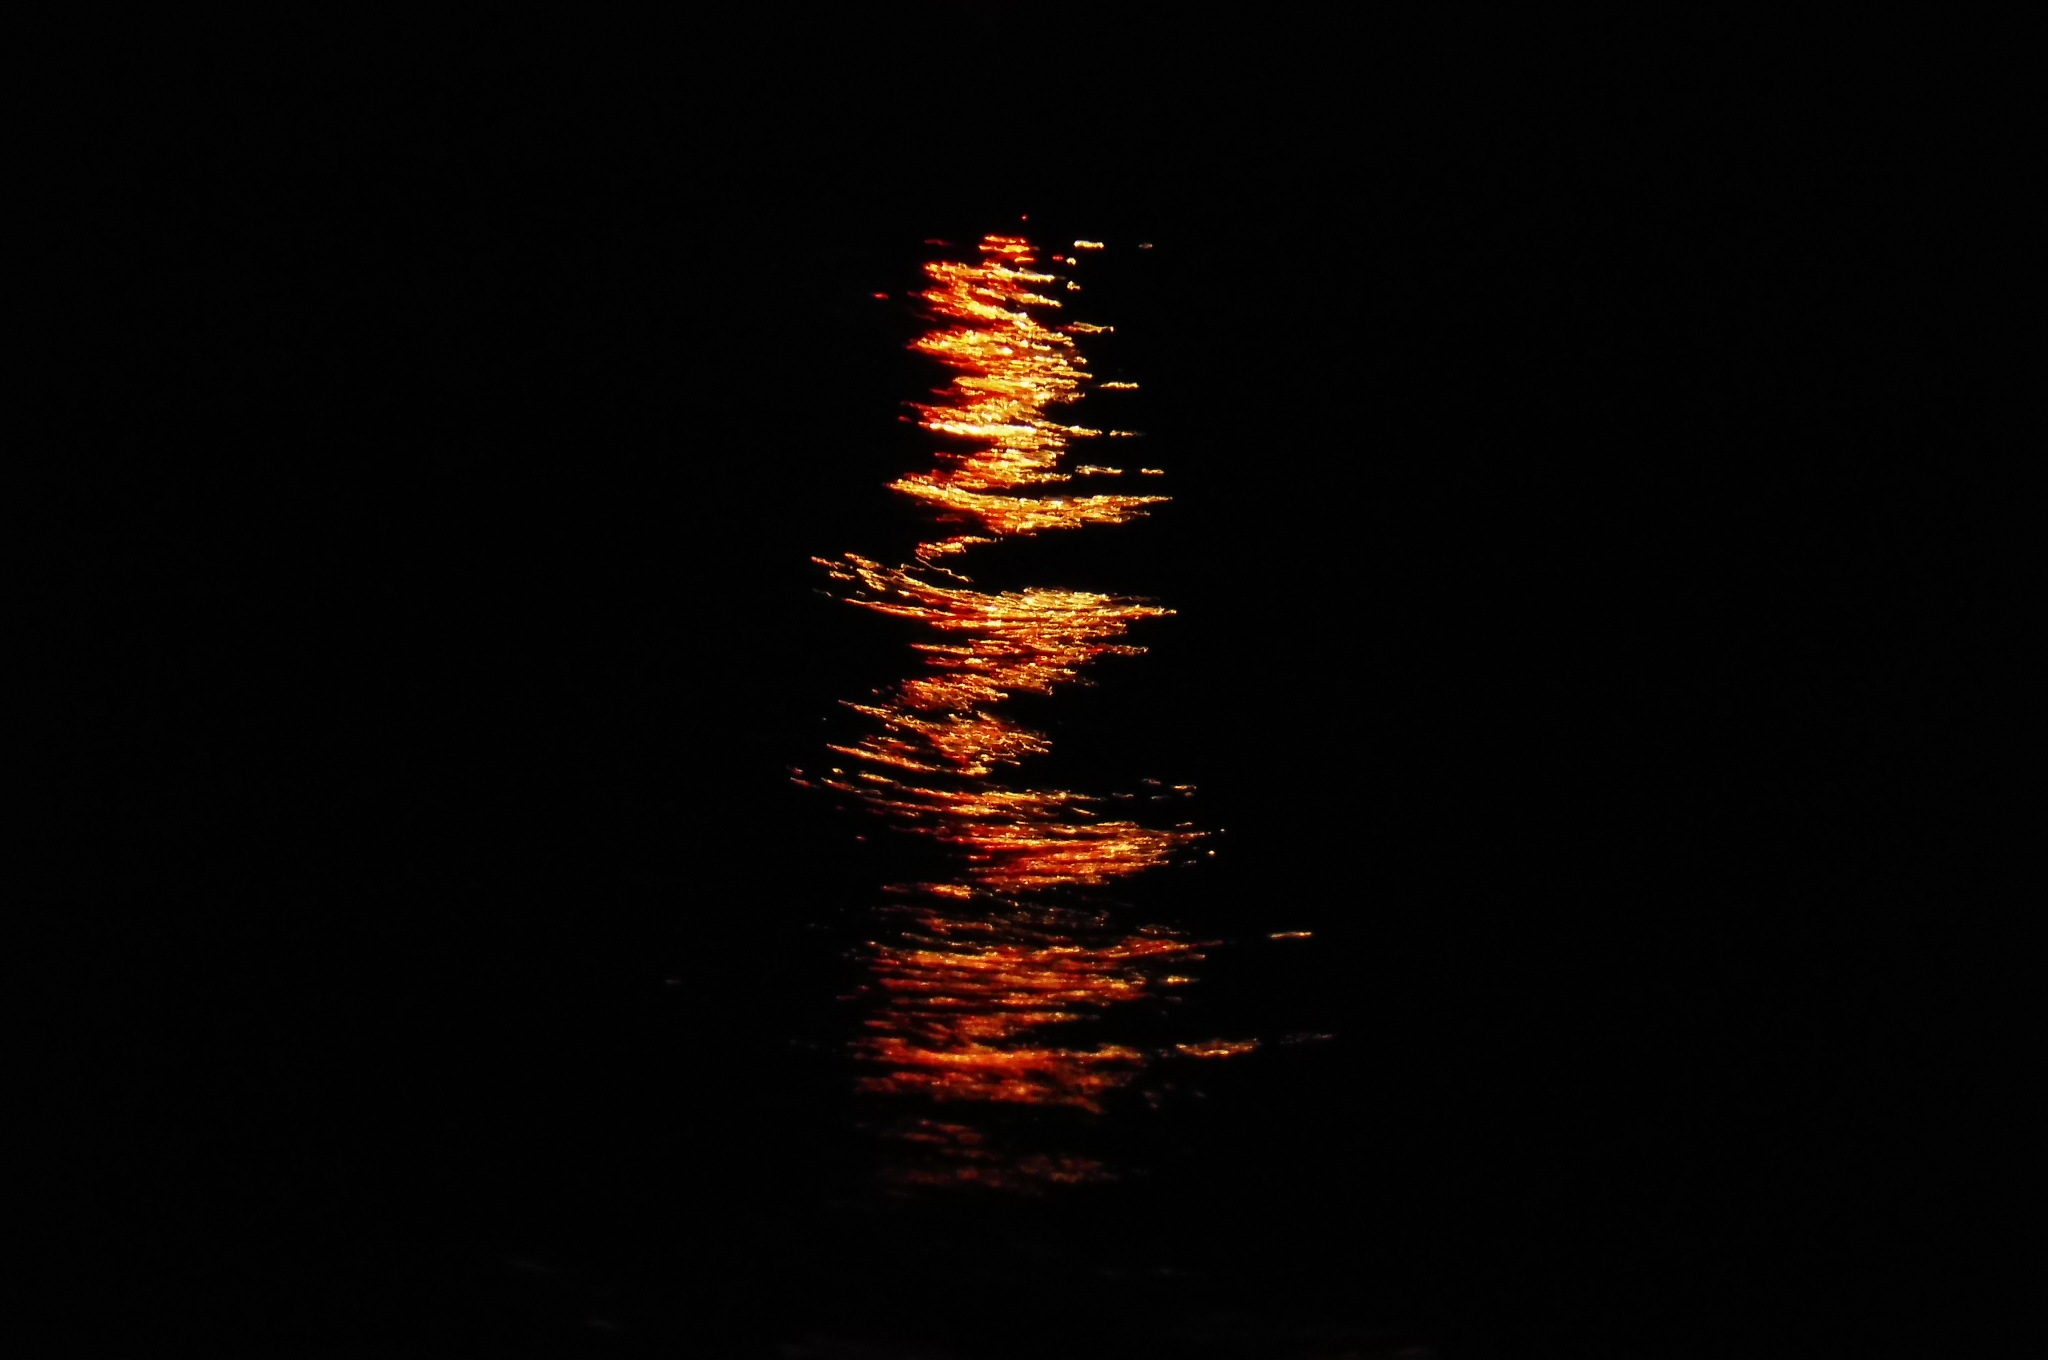 Reflection of a light in the darkness by Vasileia